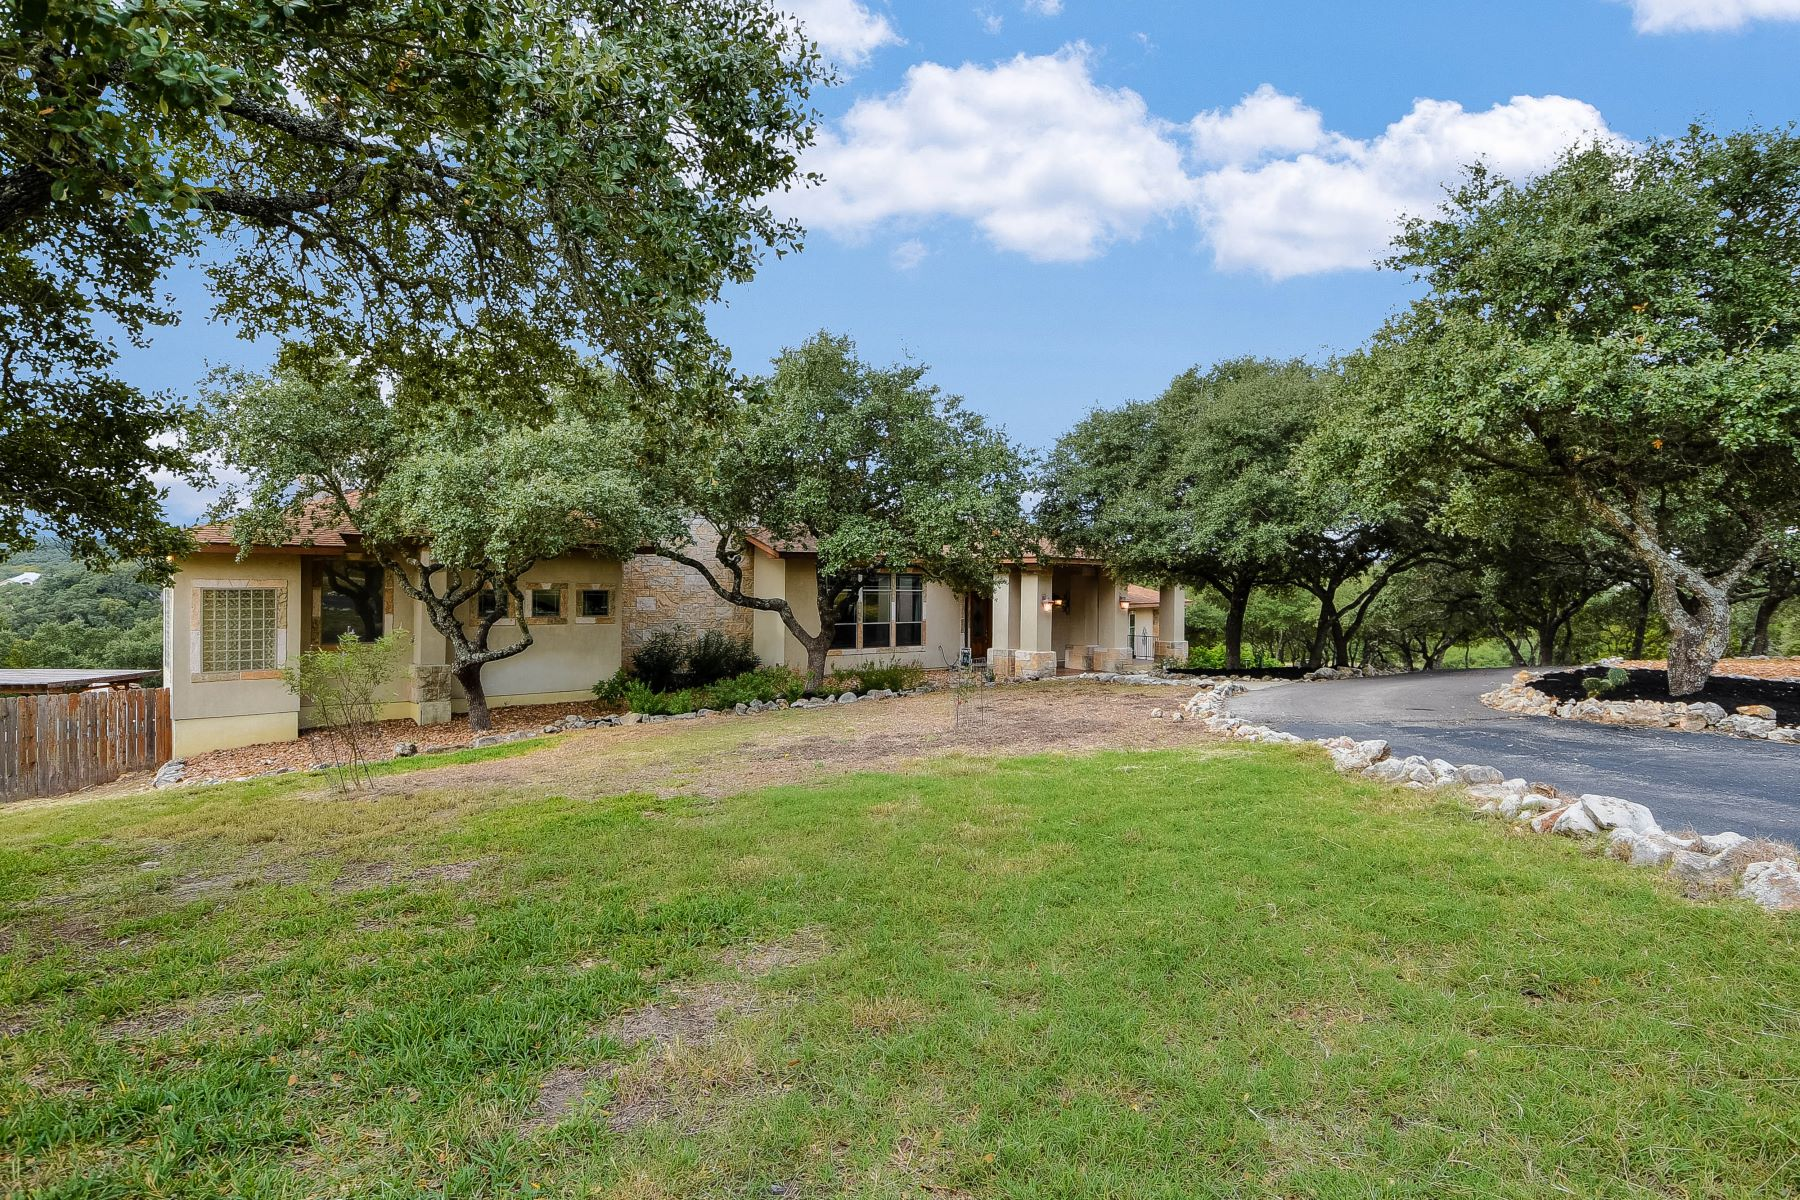 Single Family Home for Sale at Unique Hill Country Property 319 Westin Hills New Braunfels, Texas 78132 United States